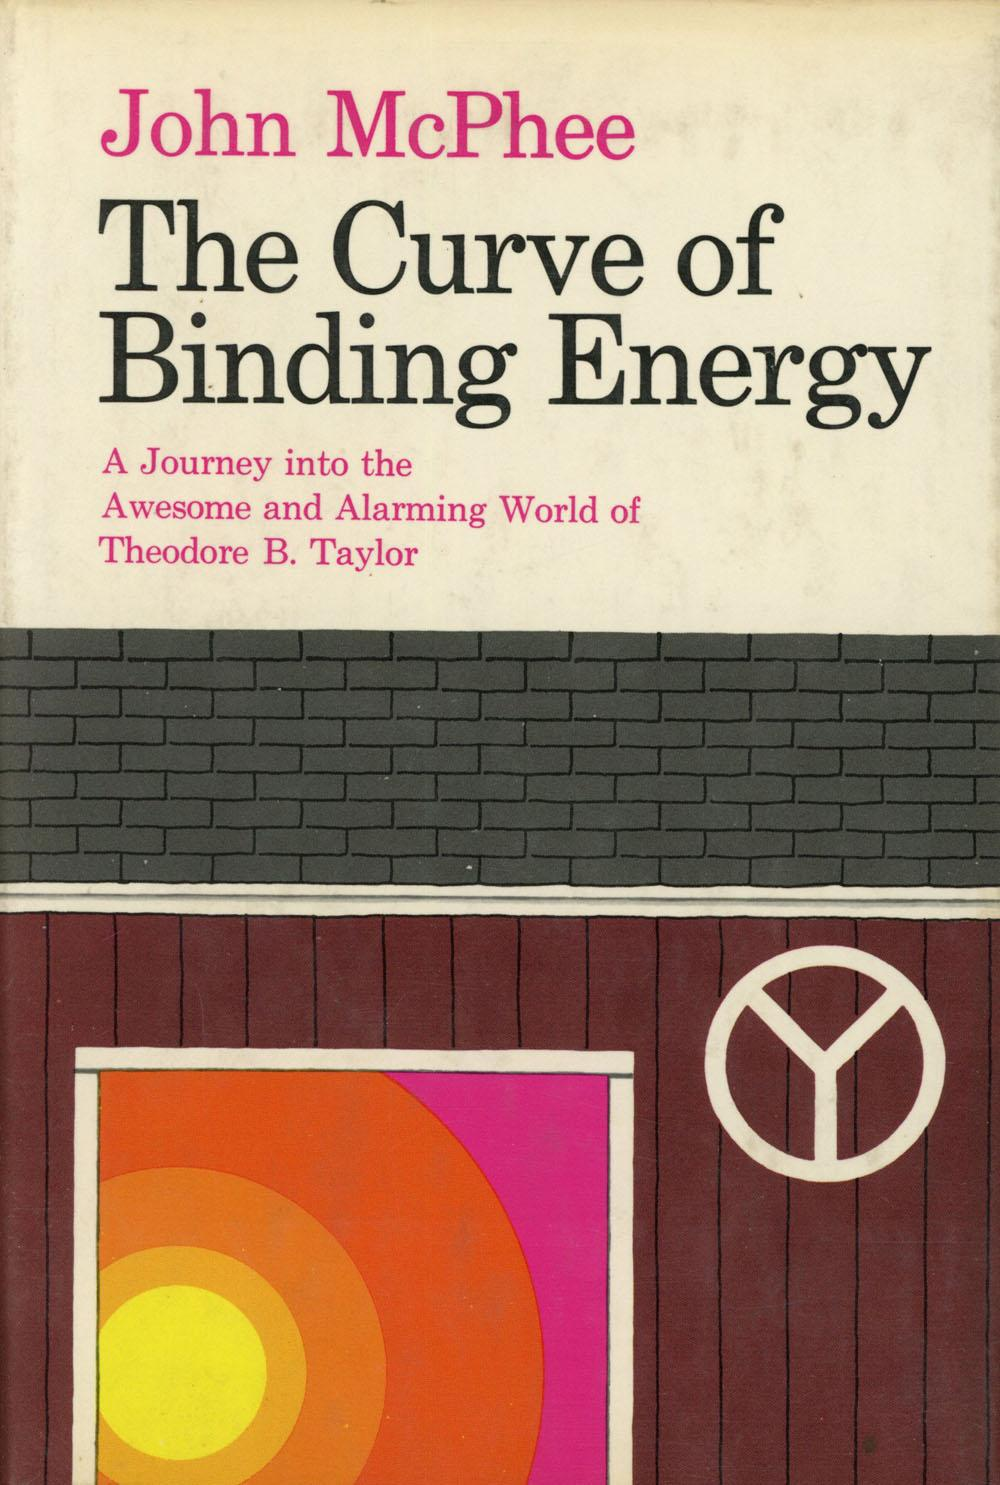 cover of The Curve of Binding Energy by John McPhee